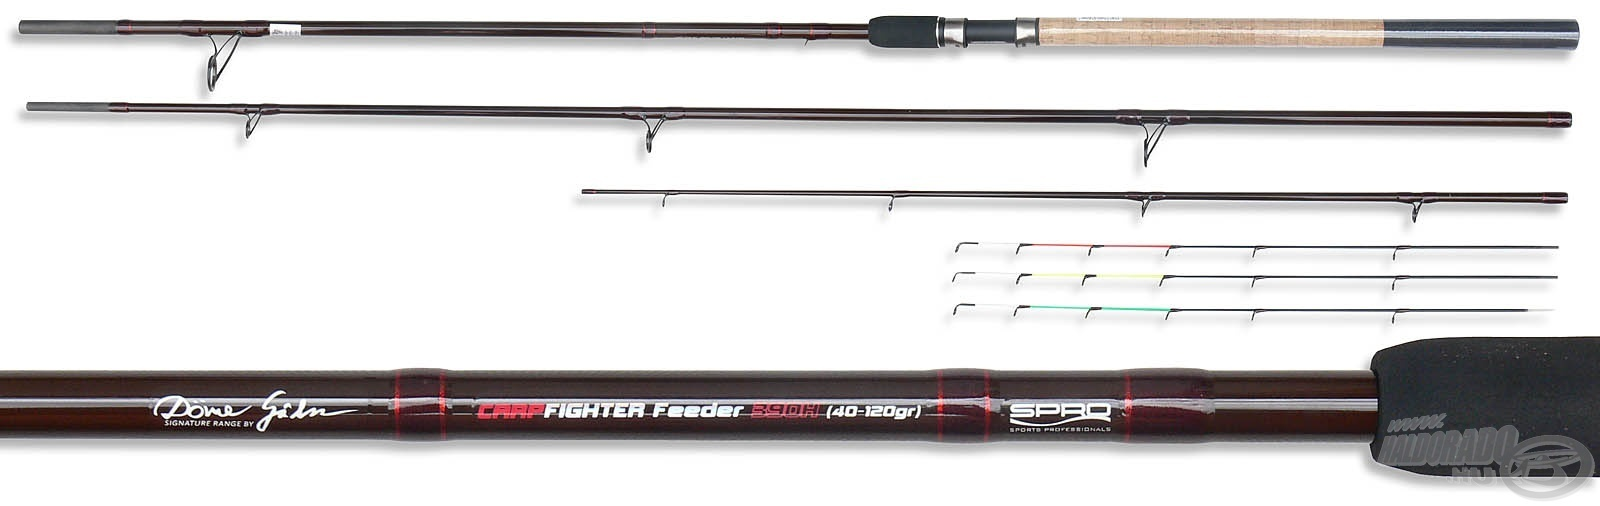 SPRO Team Feeder Carp Fighter 330M - by D�me G�bor 14990Ft